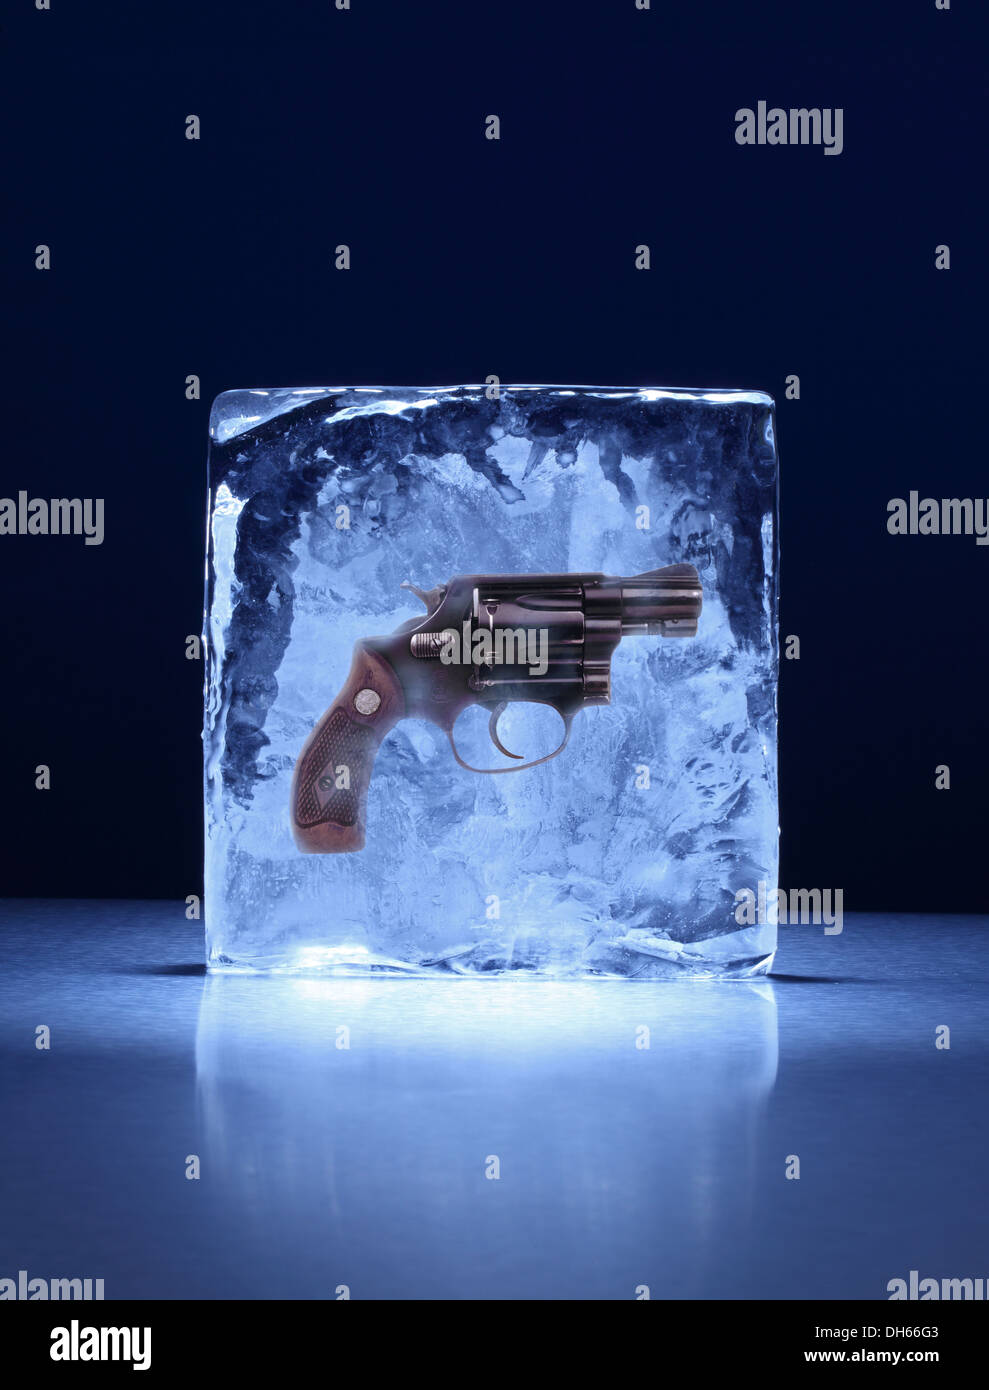 A handgun frozen in a clear block of ice - Stock Image